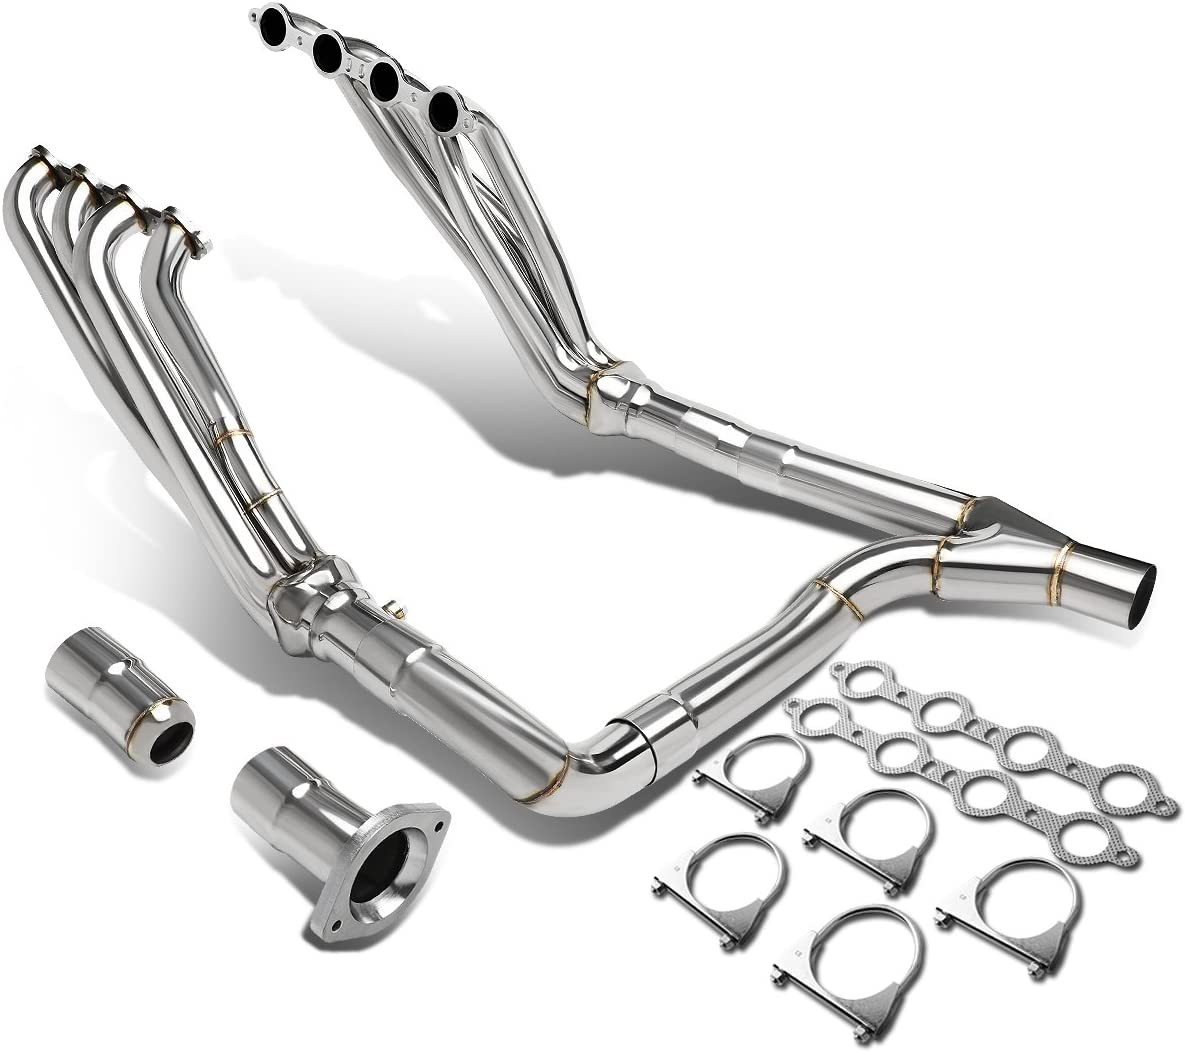 DNA Motoring HDS-CS07+Y Max 85% OFF Tulsa Mall Stainless Header Exhaust Manifold Steel